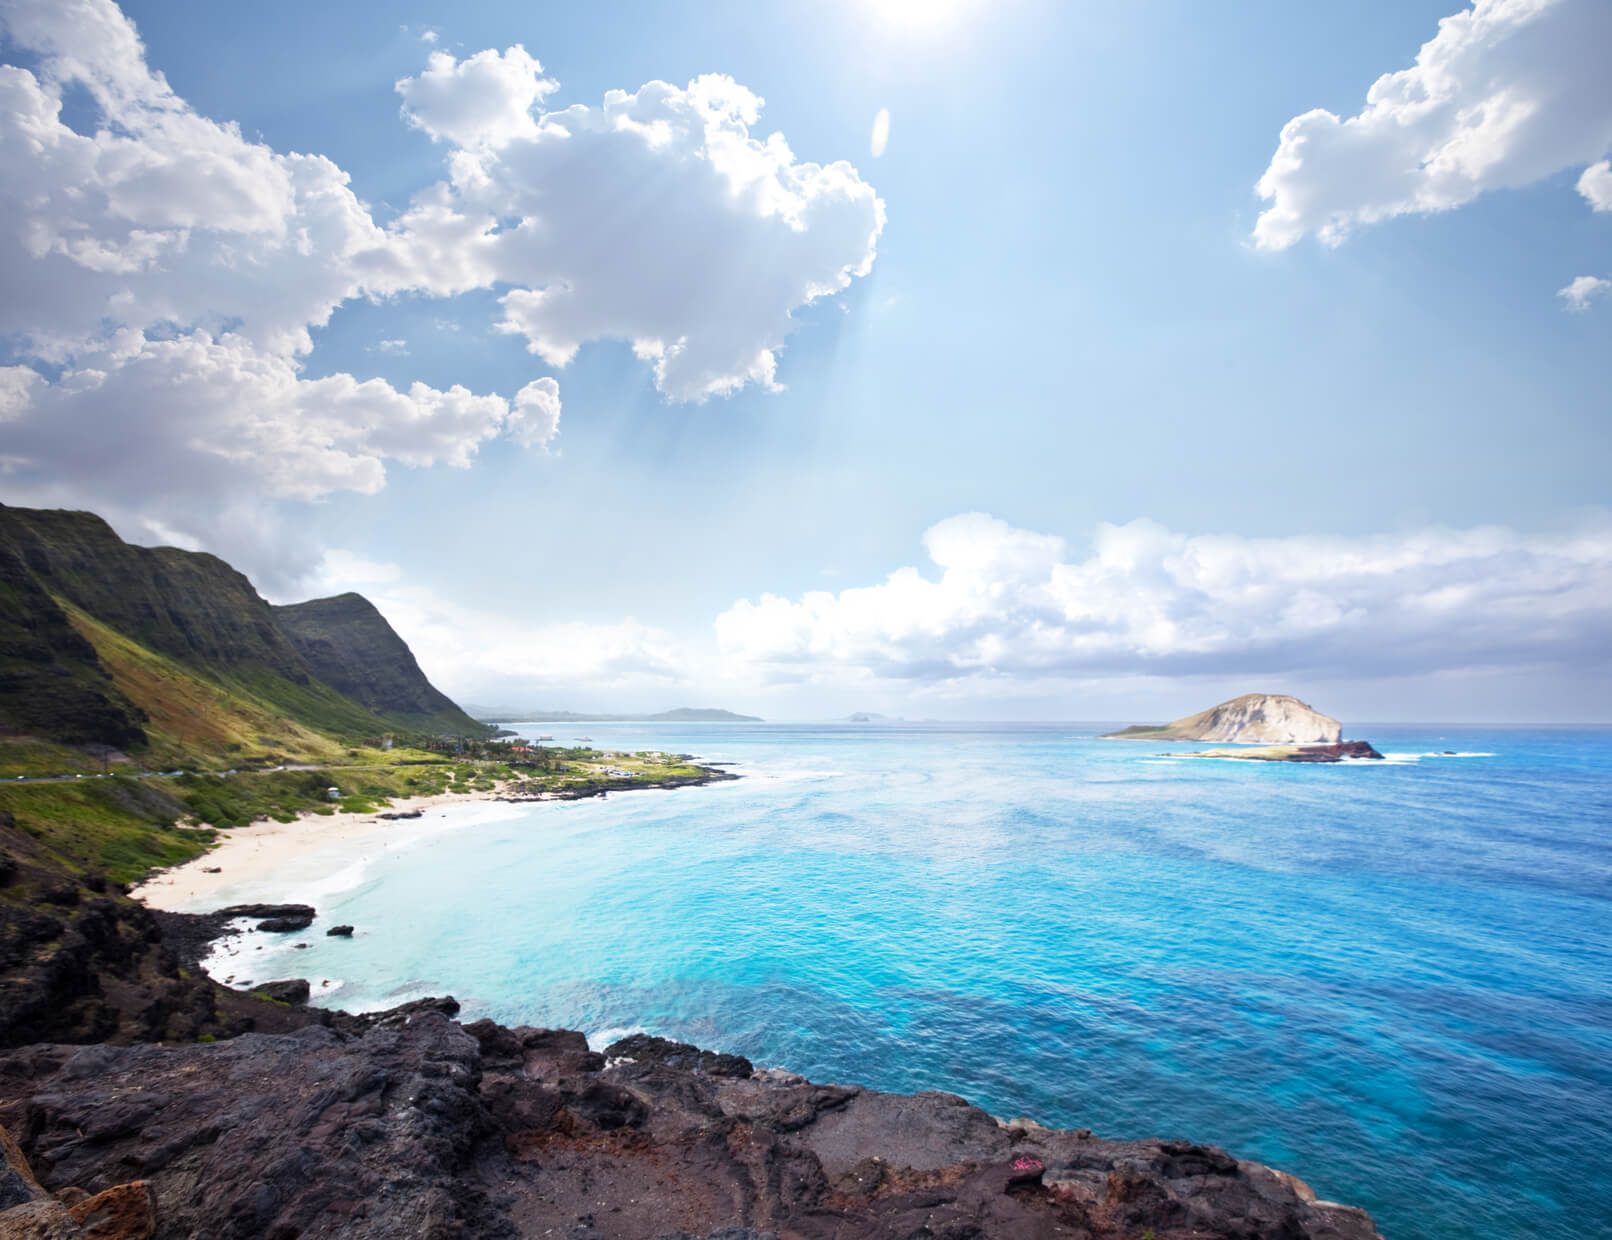 HOT!! Boston to Honolulu, Hawaii (& vice versa) for only $350 roundtrip